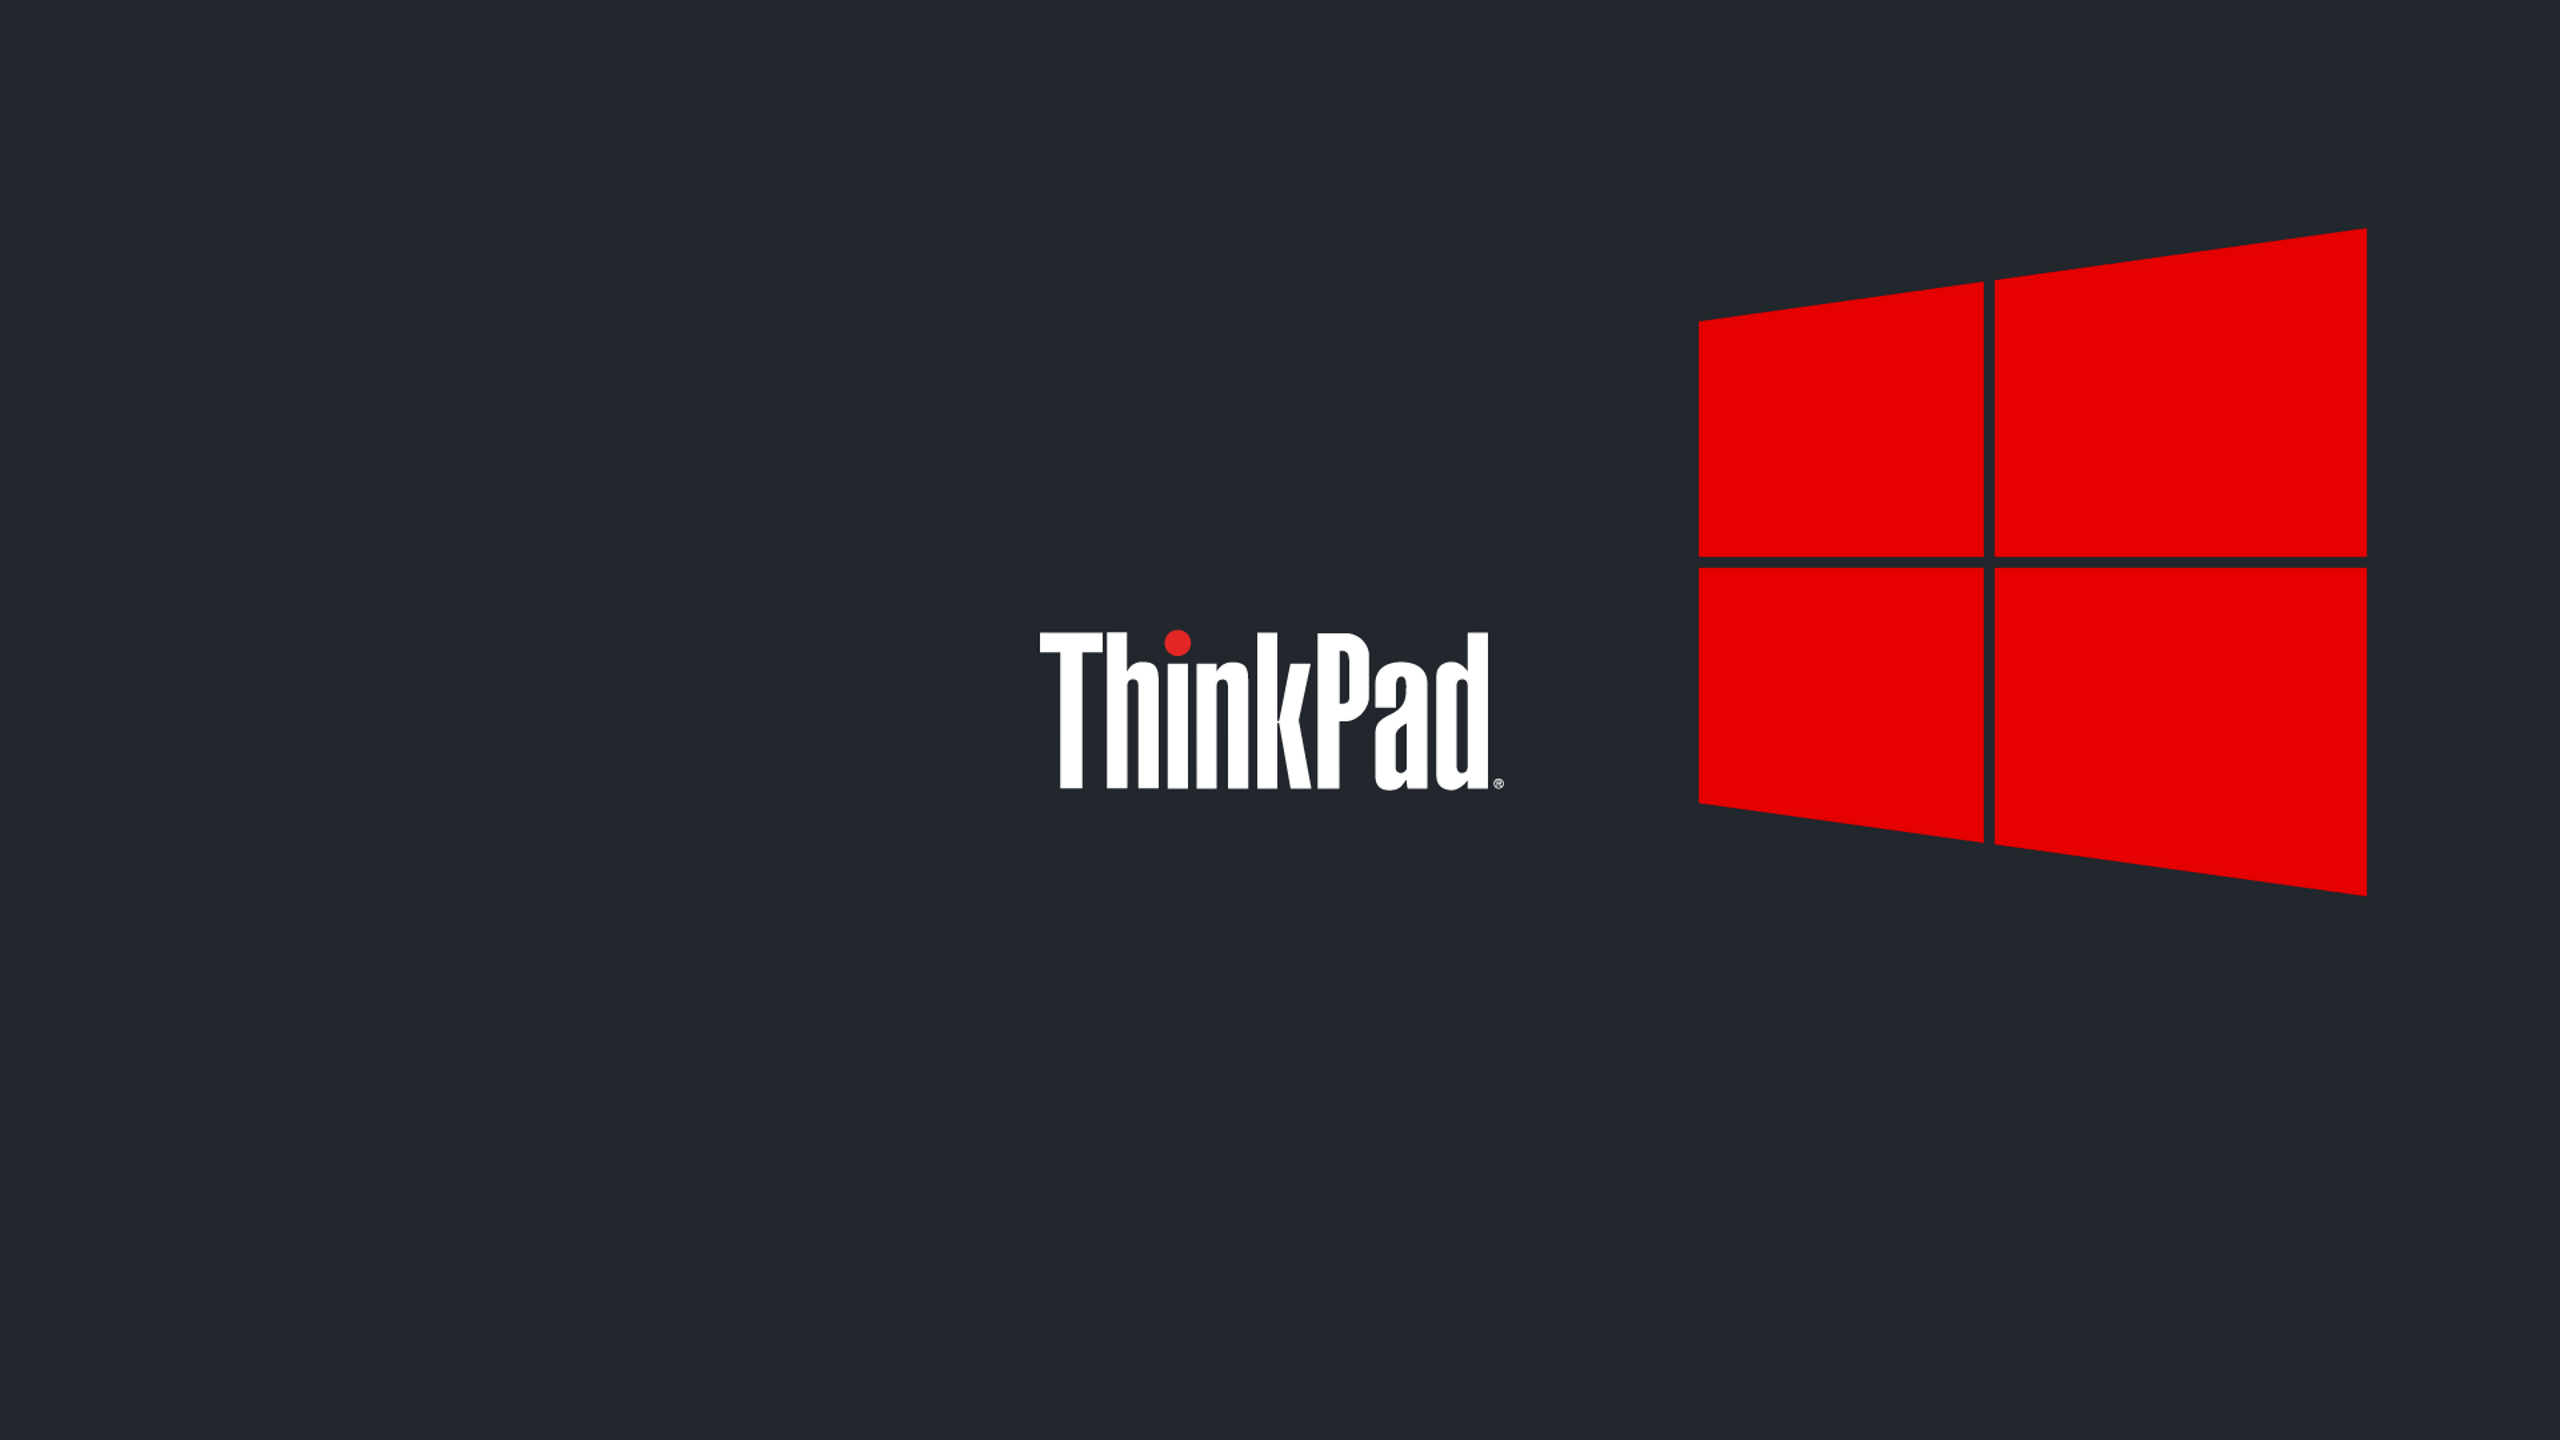 Thinkpad Wallpaper Wall Giftwatches Co